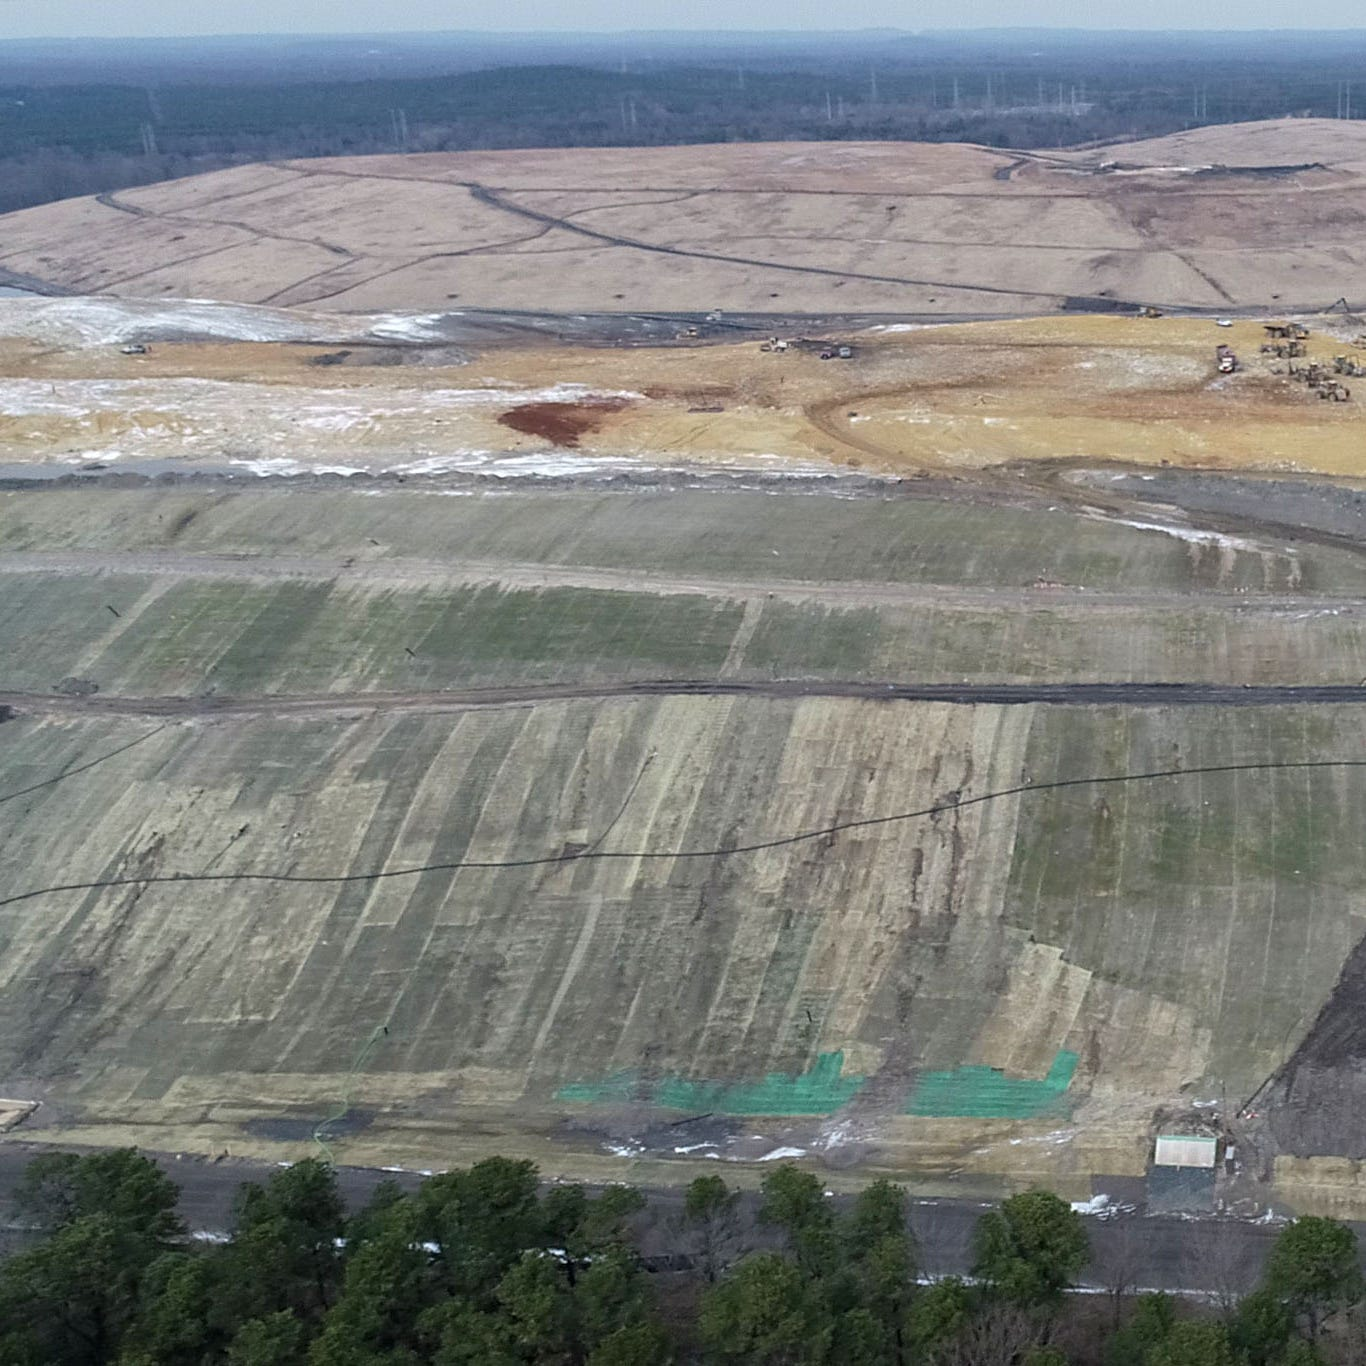 See drone video of Monmouth County landfill; county trying odor solution